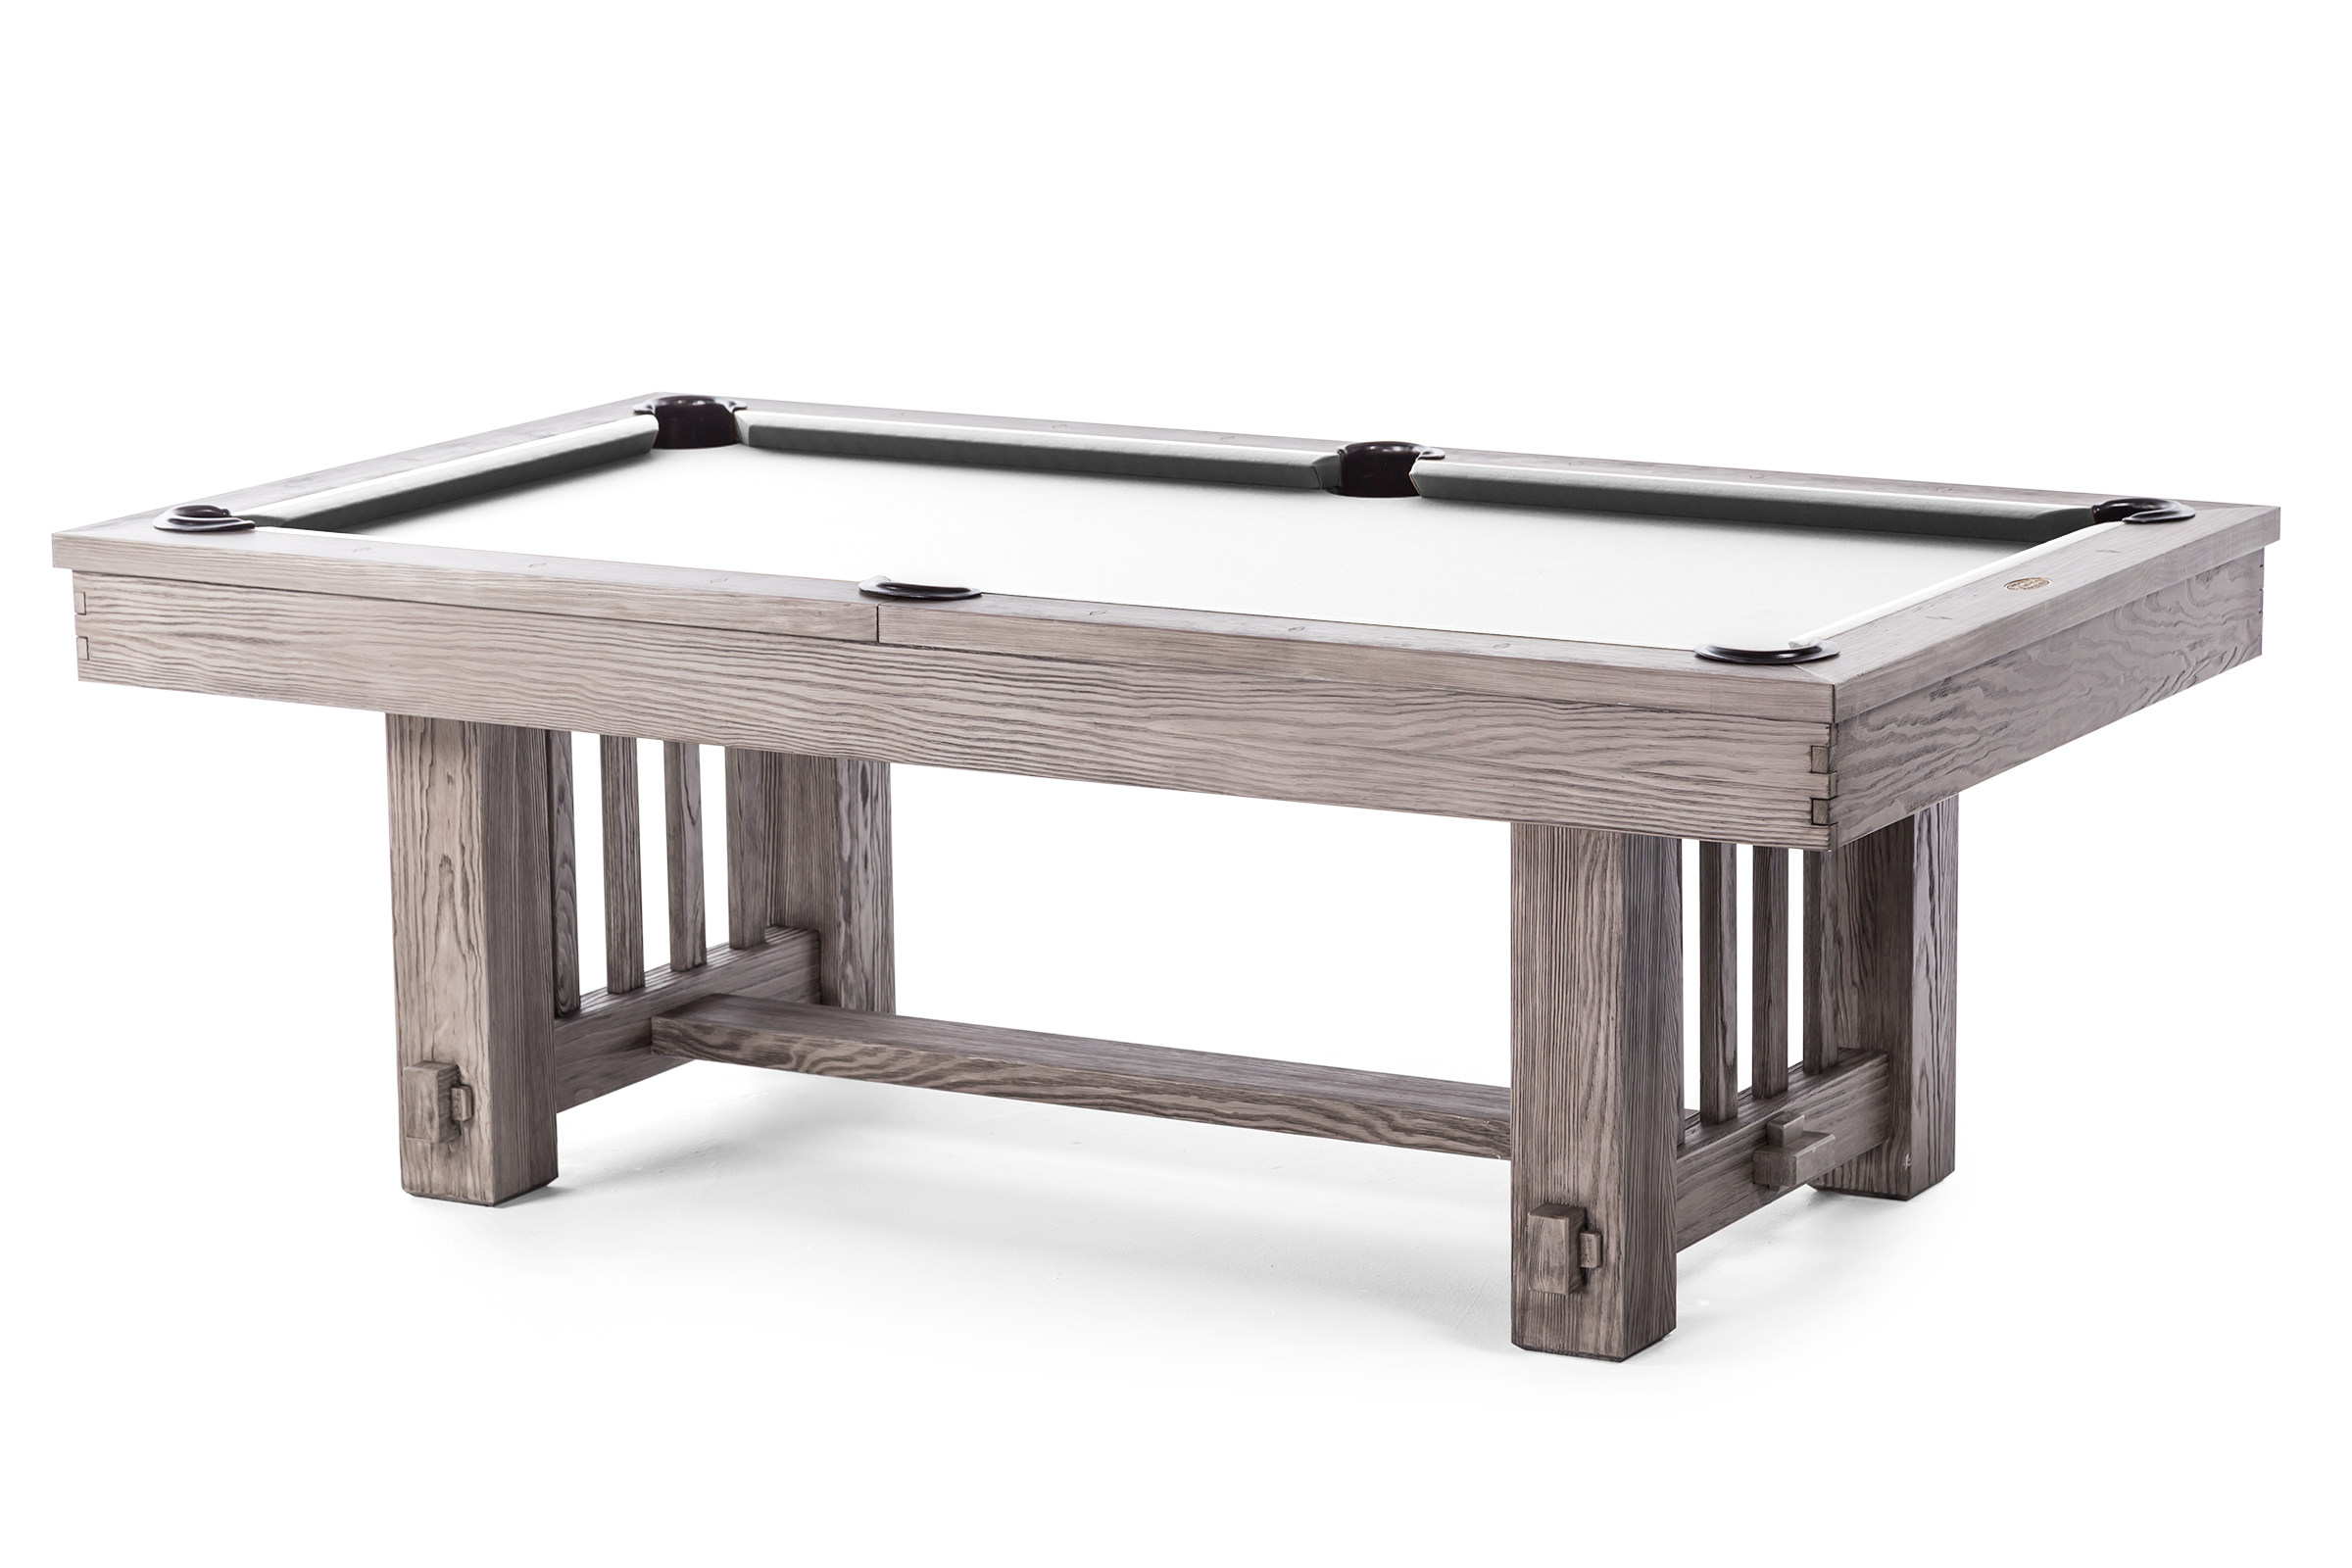 Spencer Marston Cheyenne Dining Pool Table